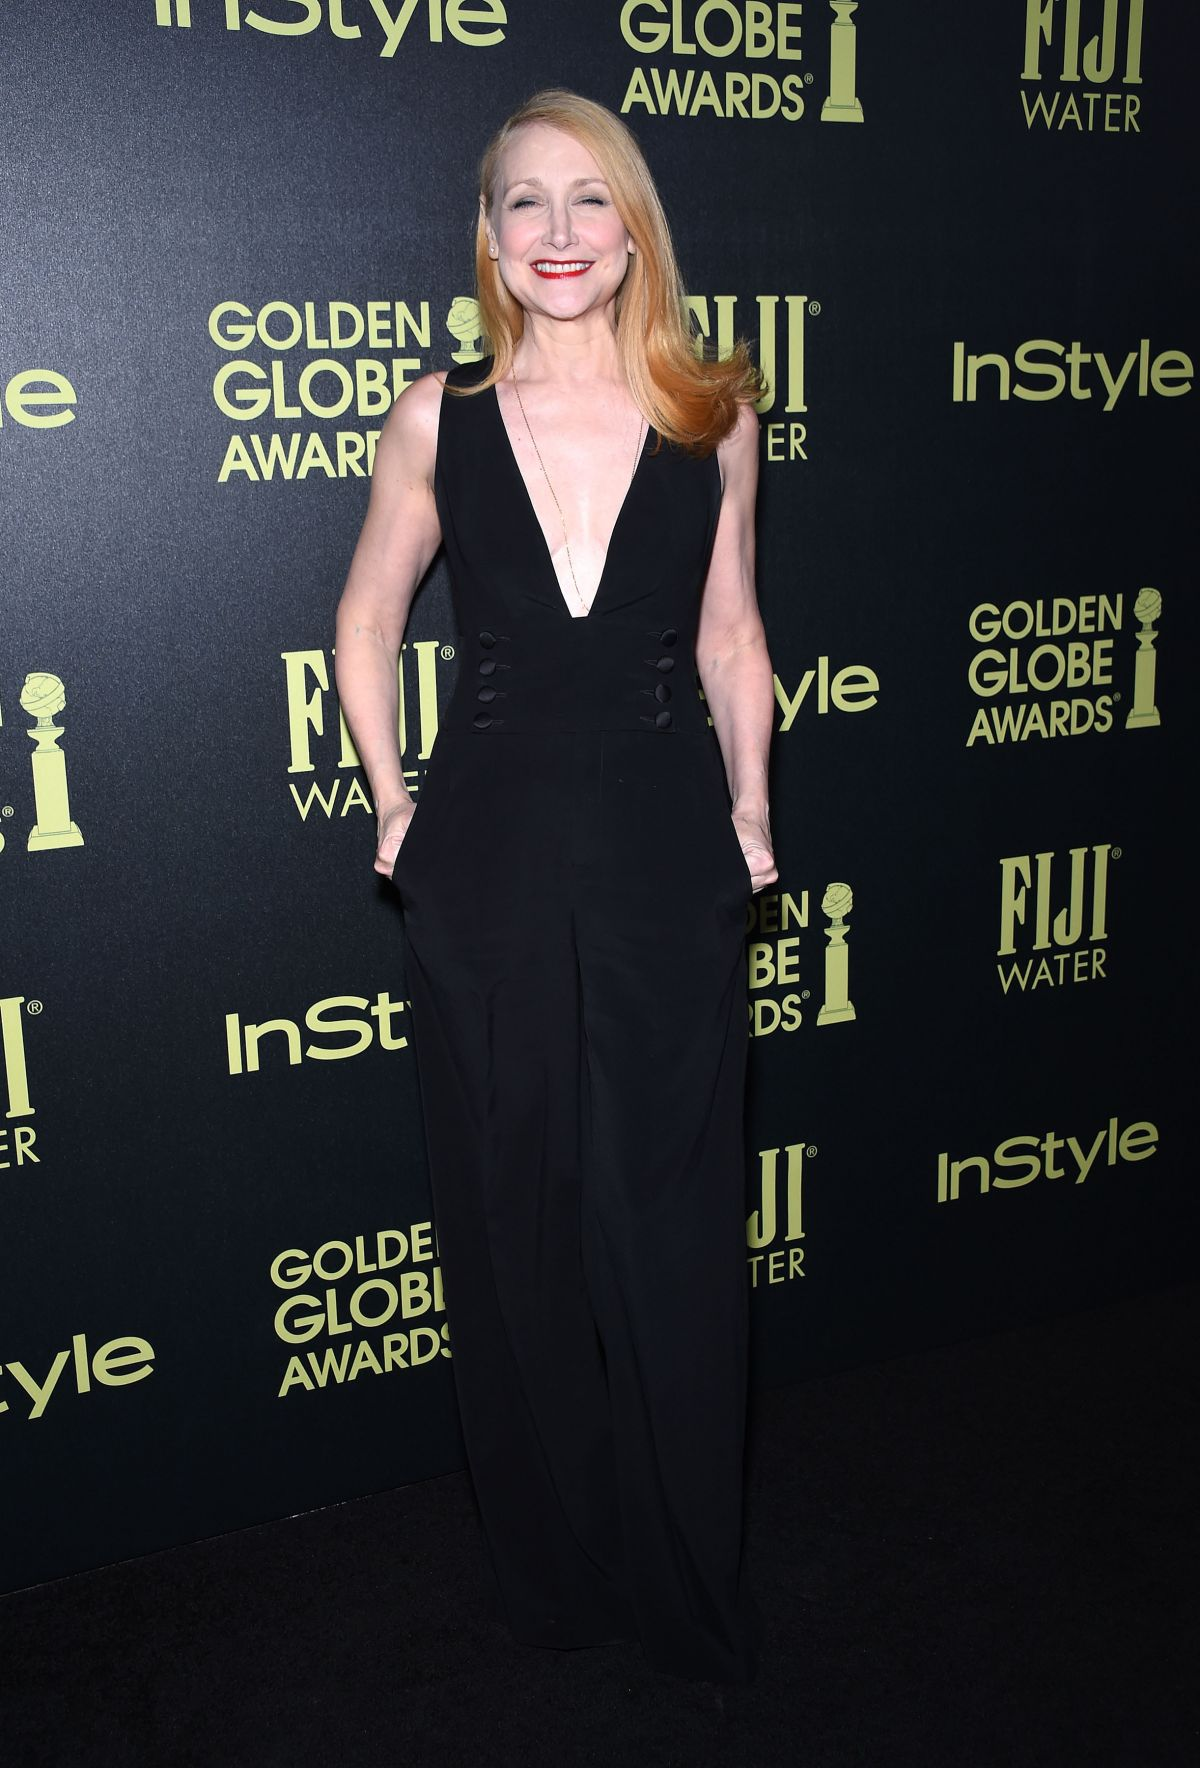 PATRICIA CLARKSON at hfpa and Instyle Celebrate 2016 Golden Globe Award Season in West Hollywood 11/17/2015